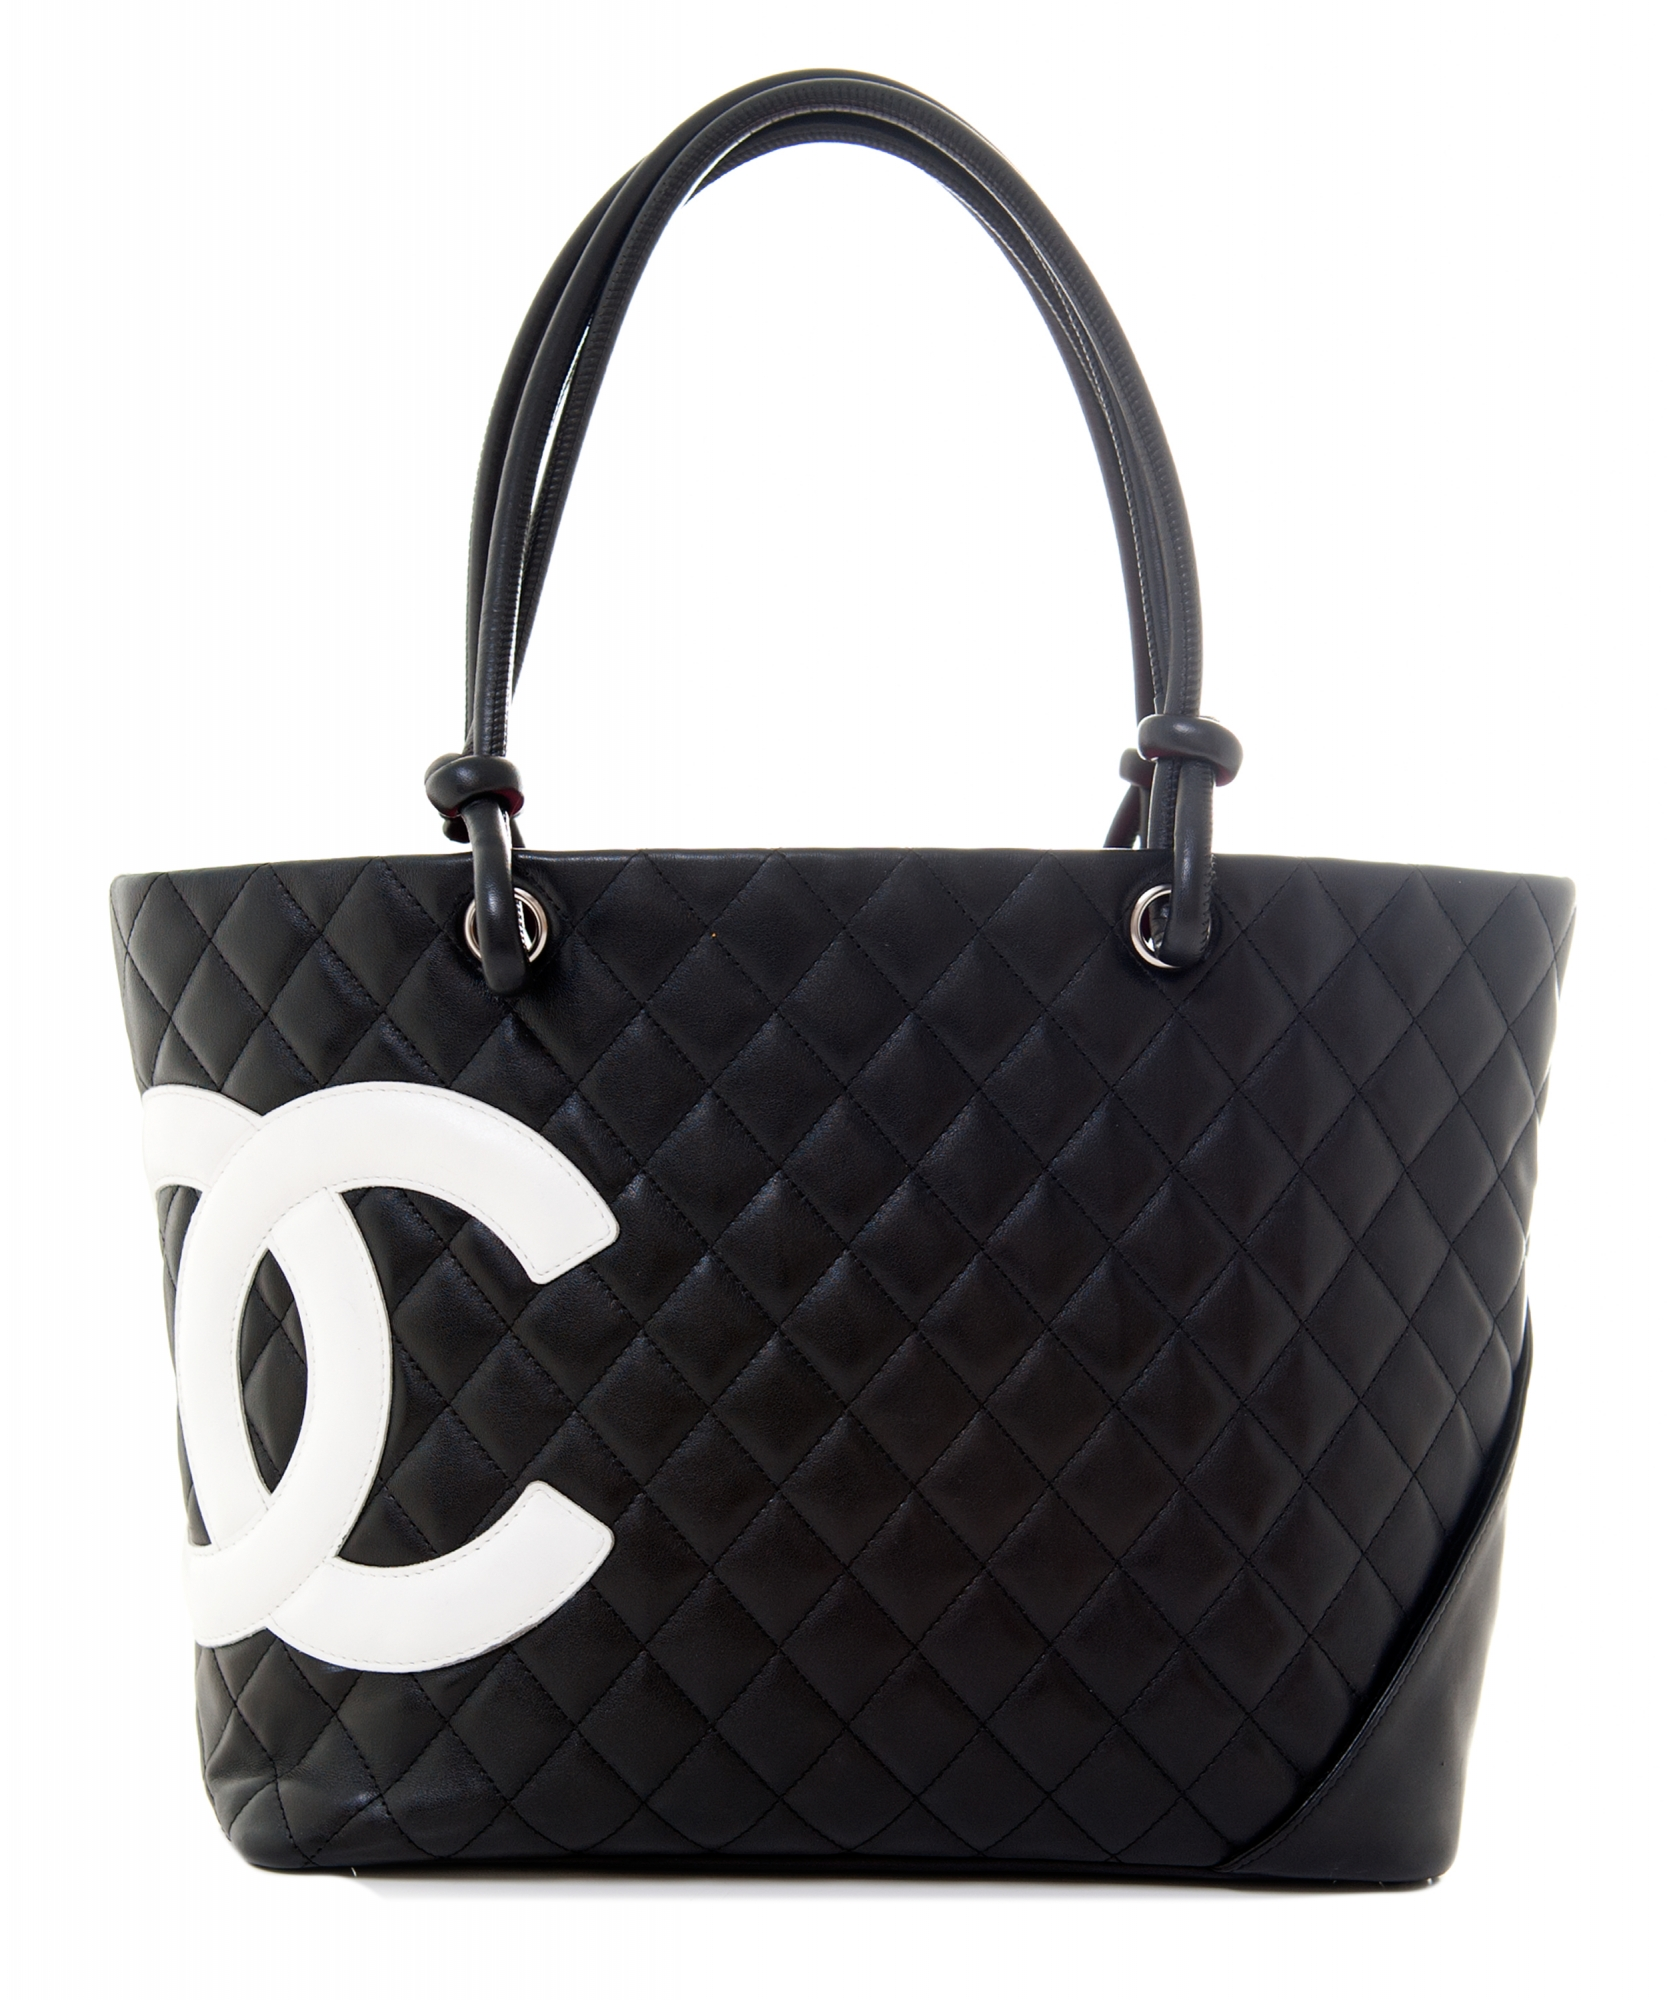 fb947d33653c88 Chanel Black Leather Ligne Cambon Tote Bag | La Doyenne